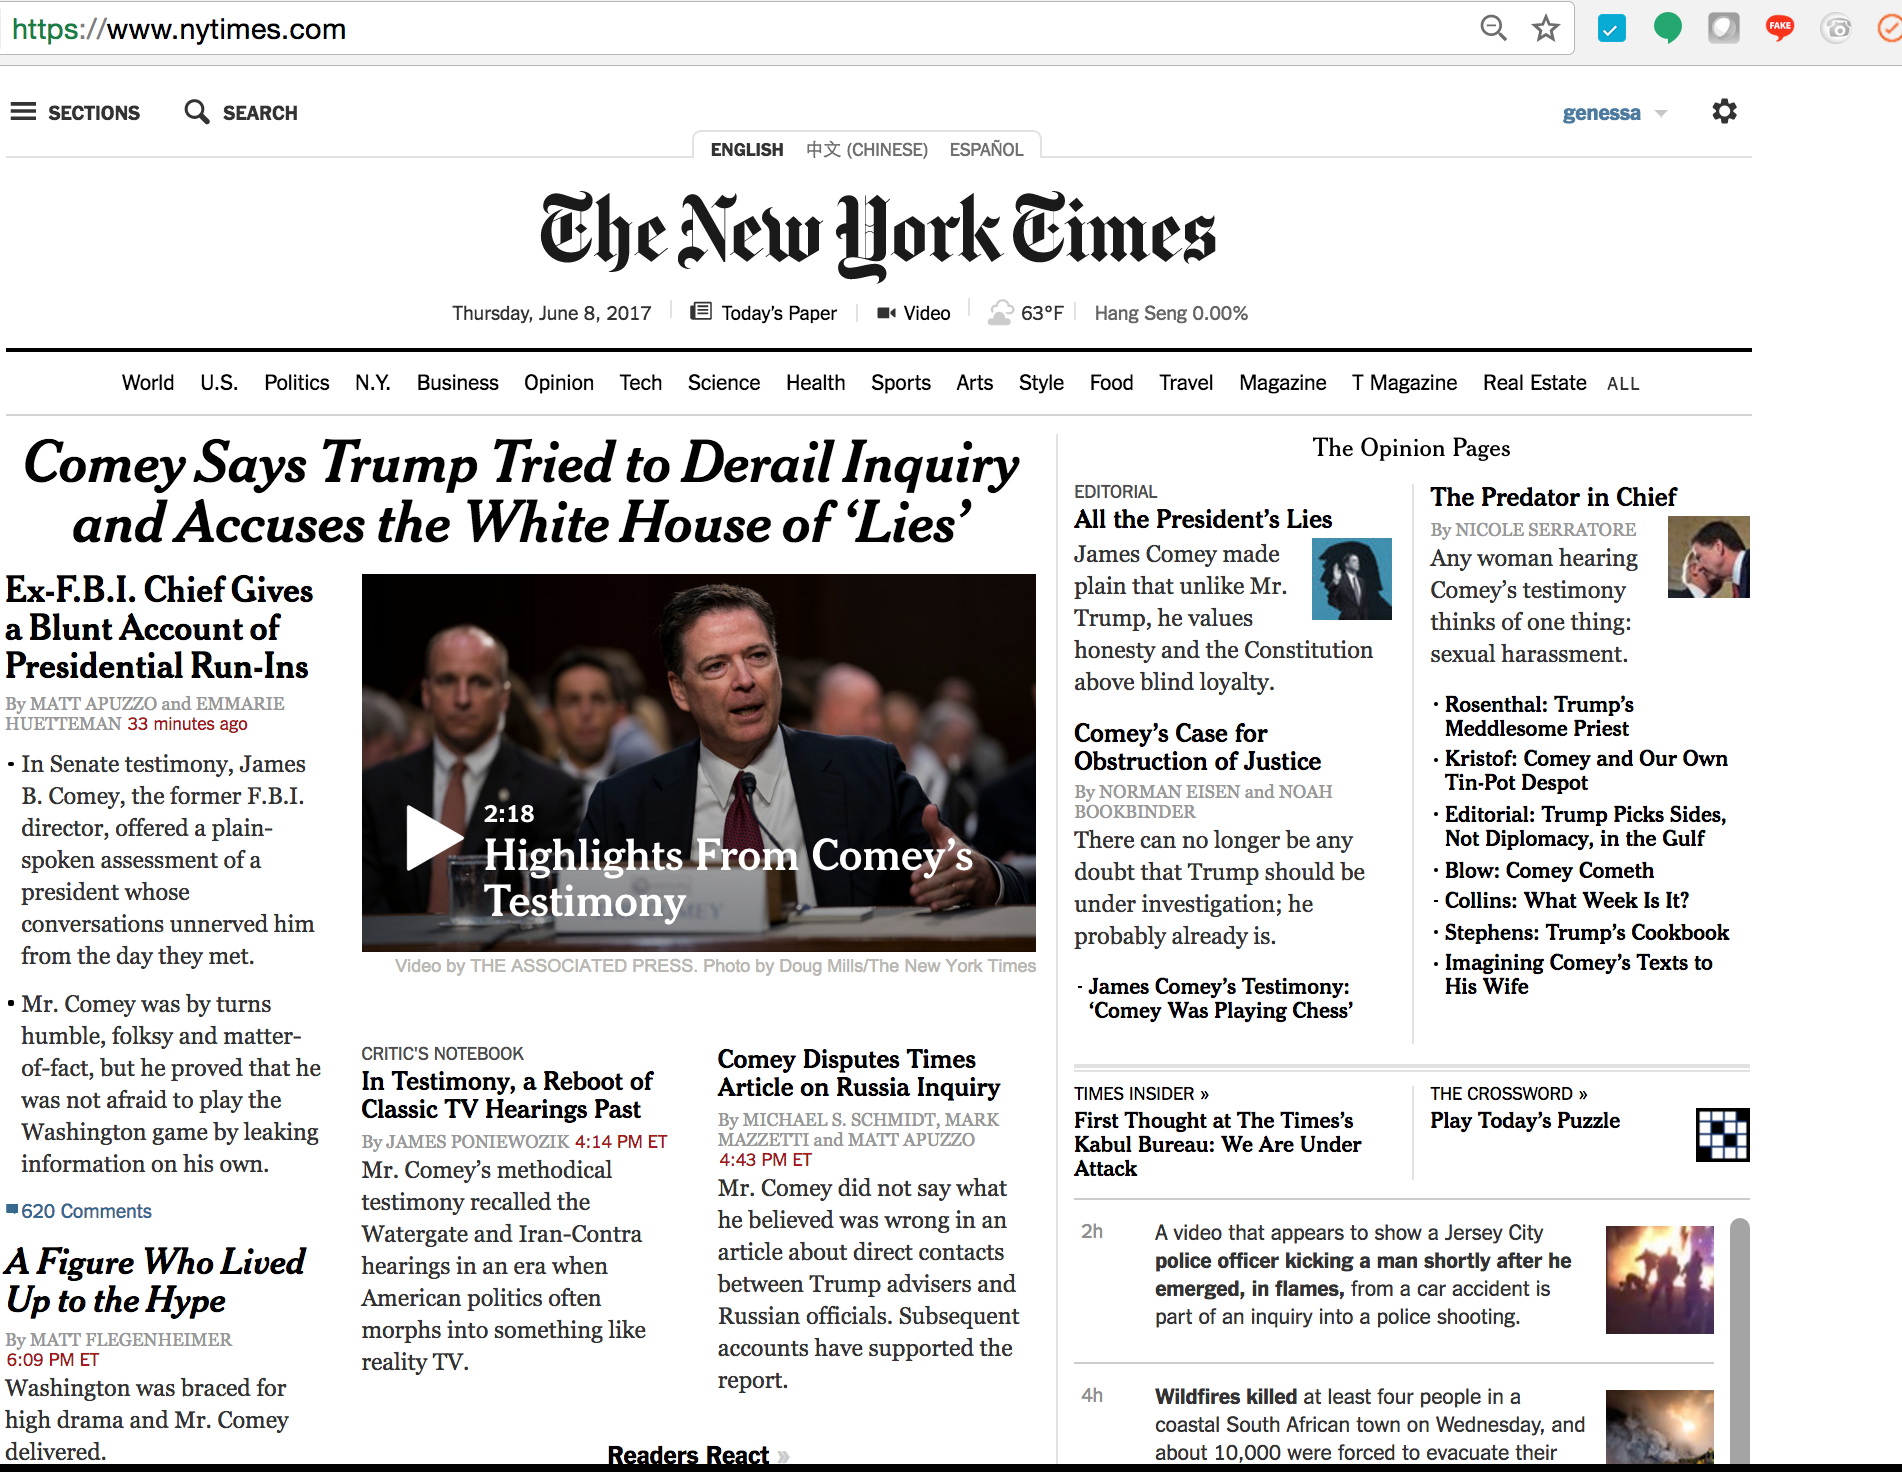 Home Page The New York Times - 6:35pm Thursday, June 8